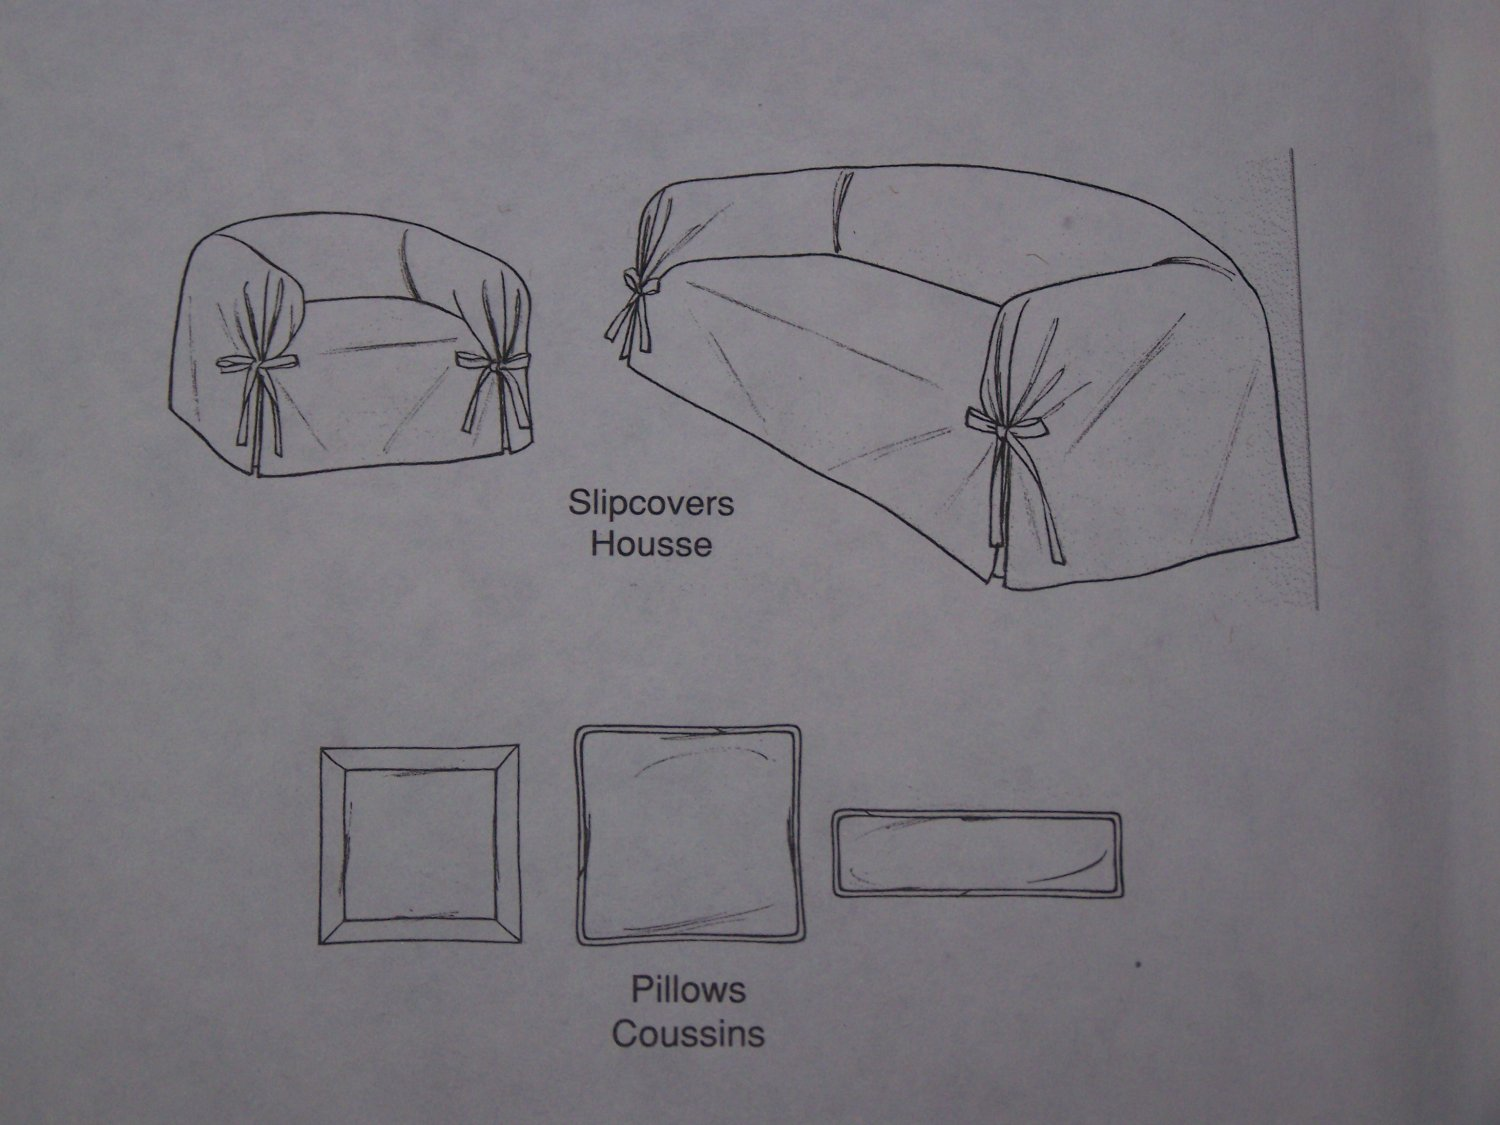 Sofa Slipcover Pattern How To Make A Sofa Slipcover Bed Using Easy Pattern Thesofa